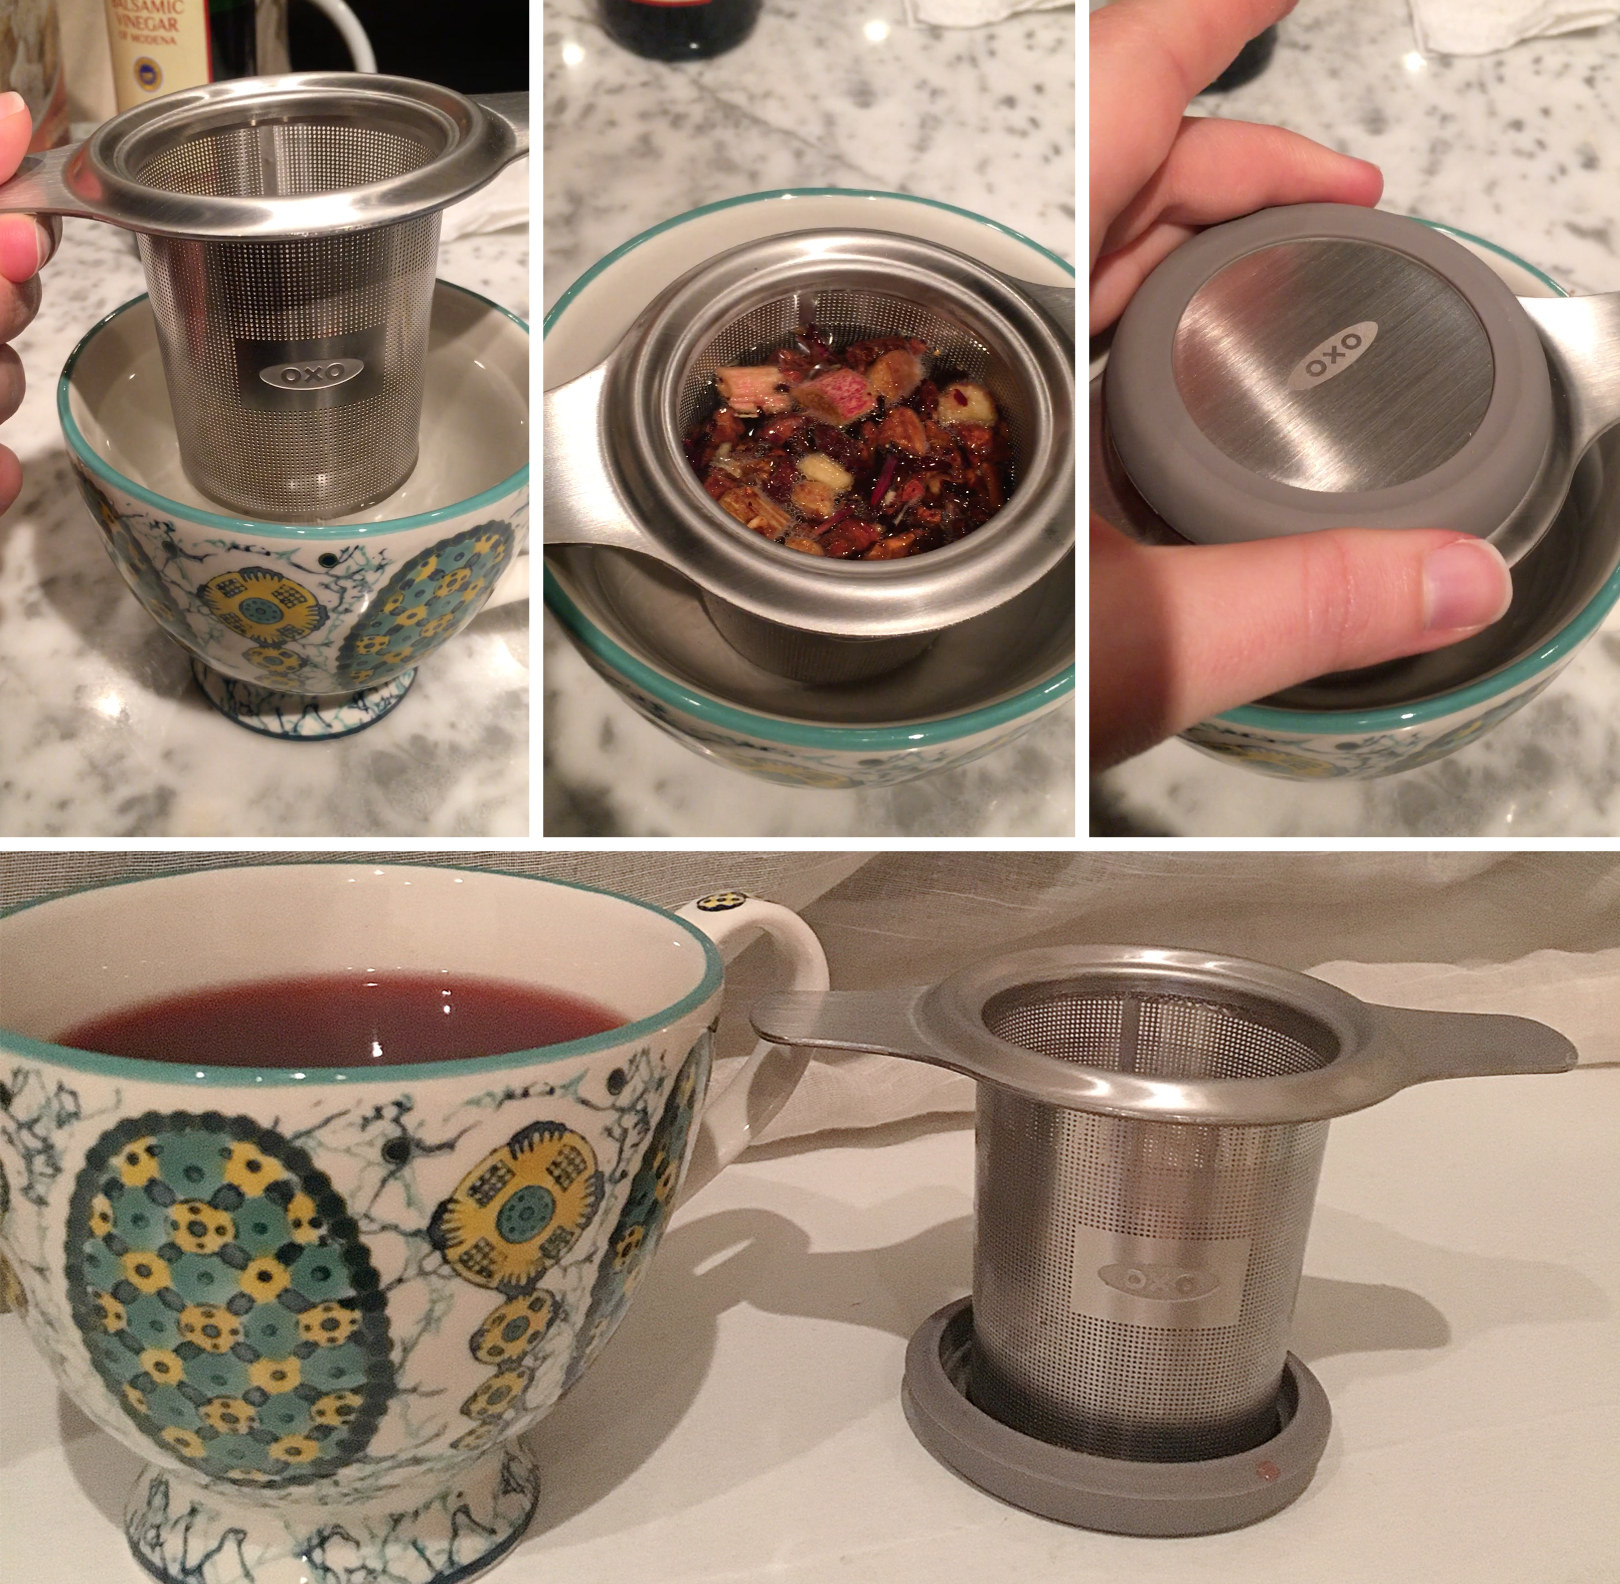 a series of images showing the progression of using the tea infuser